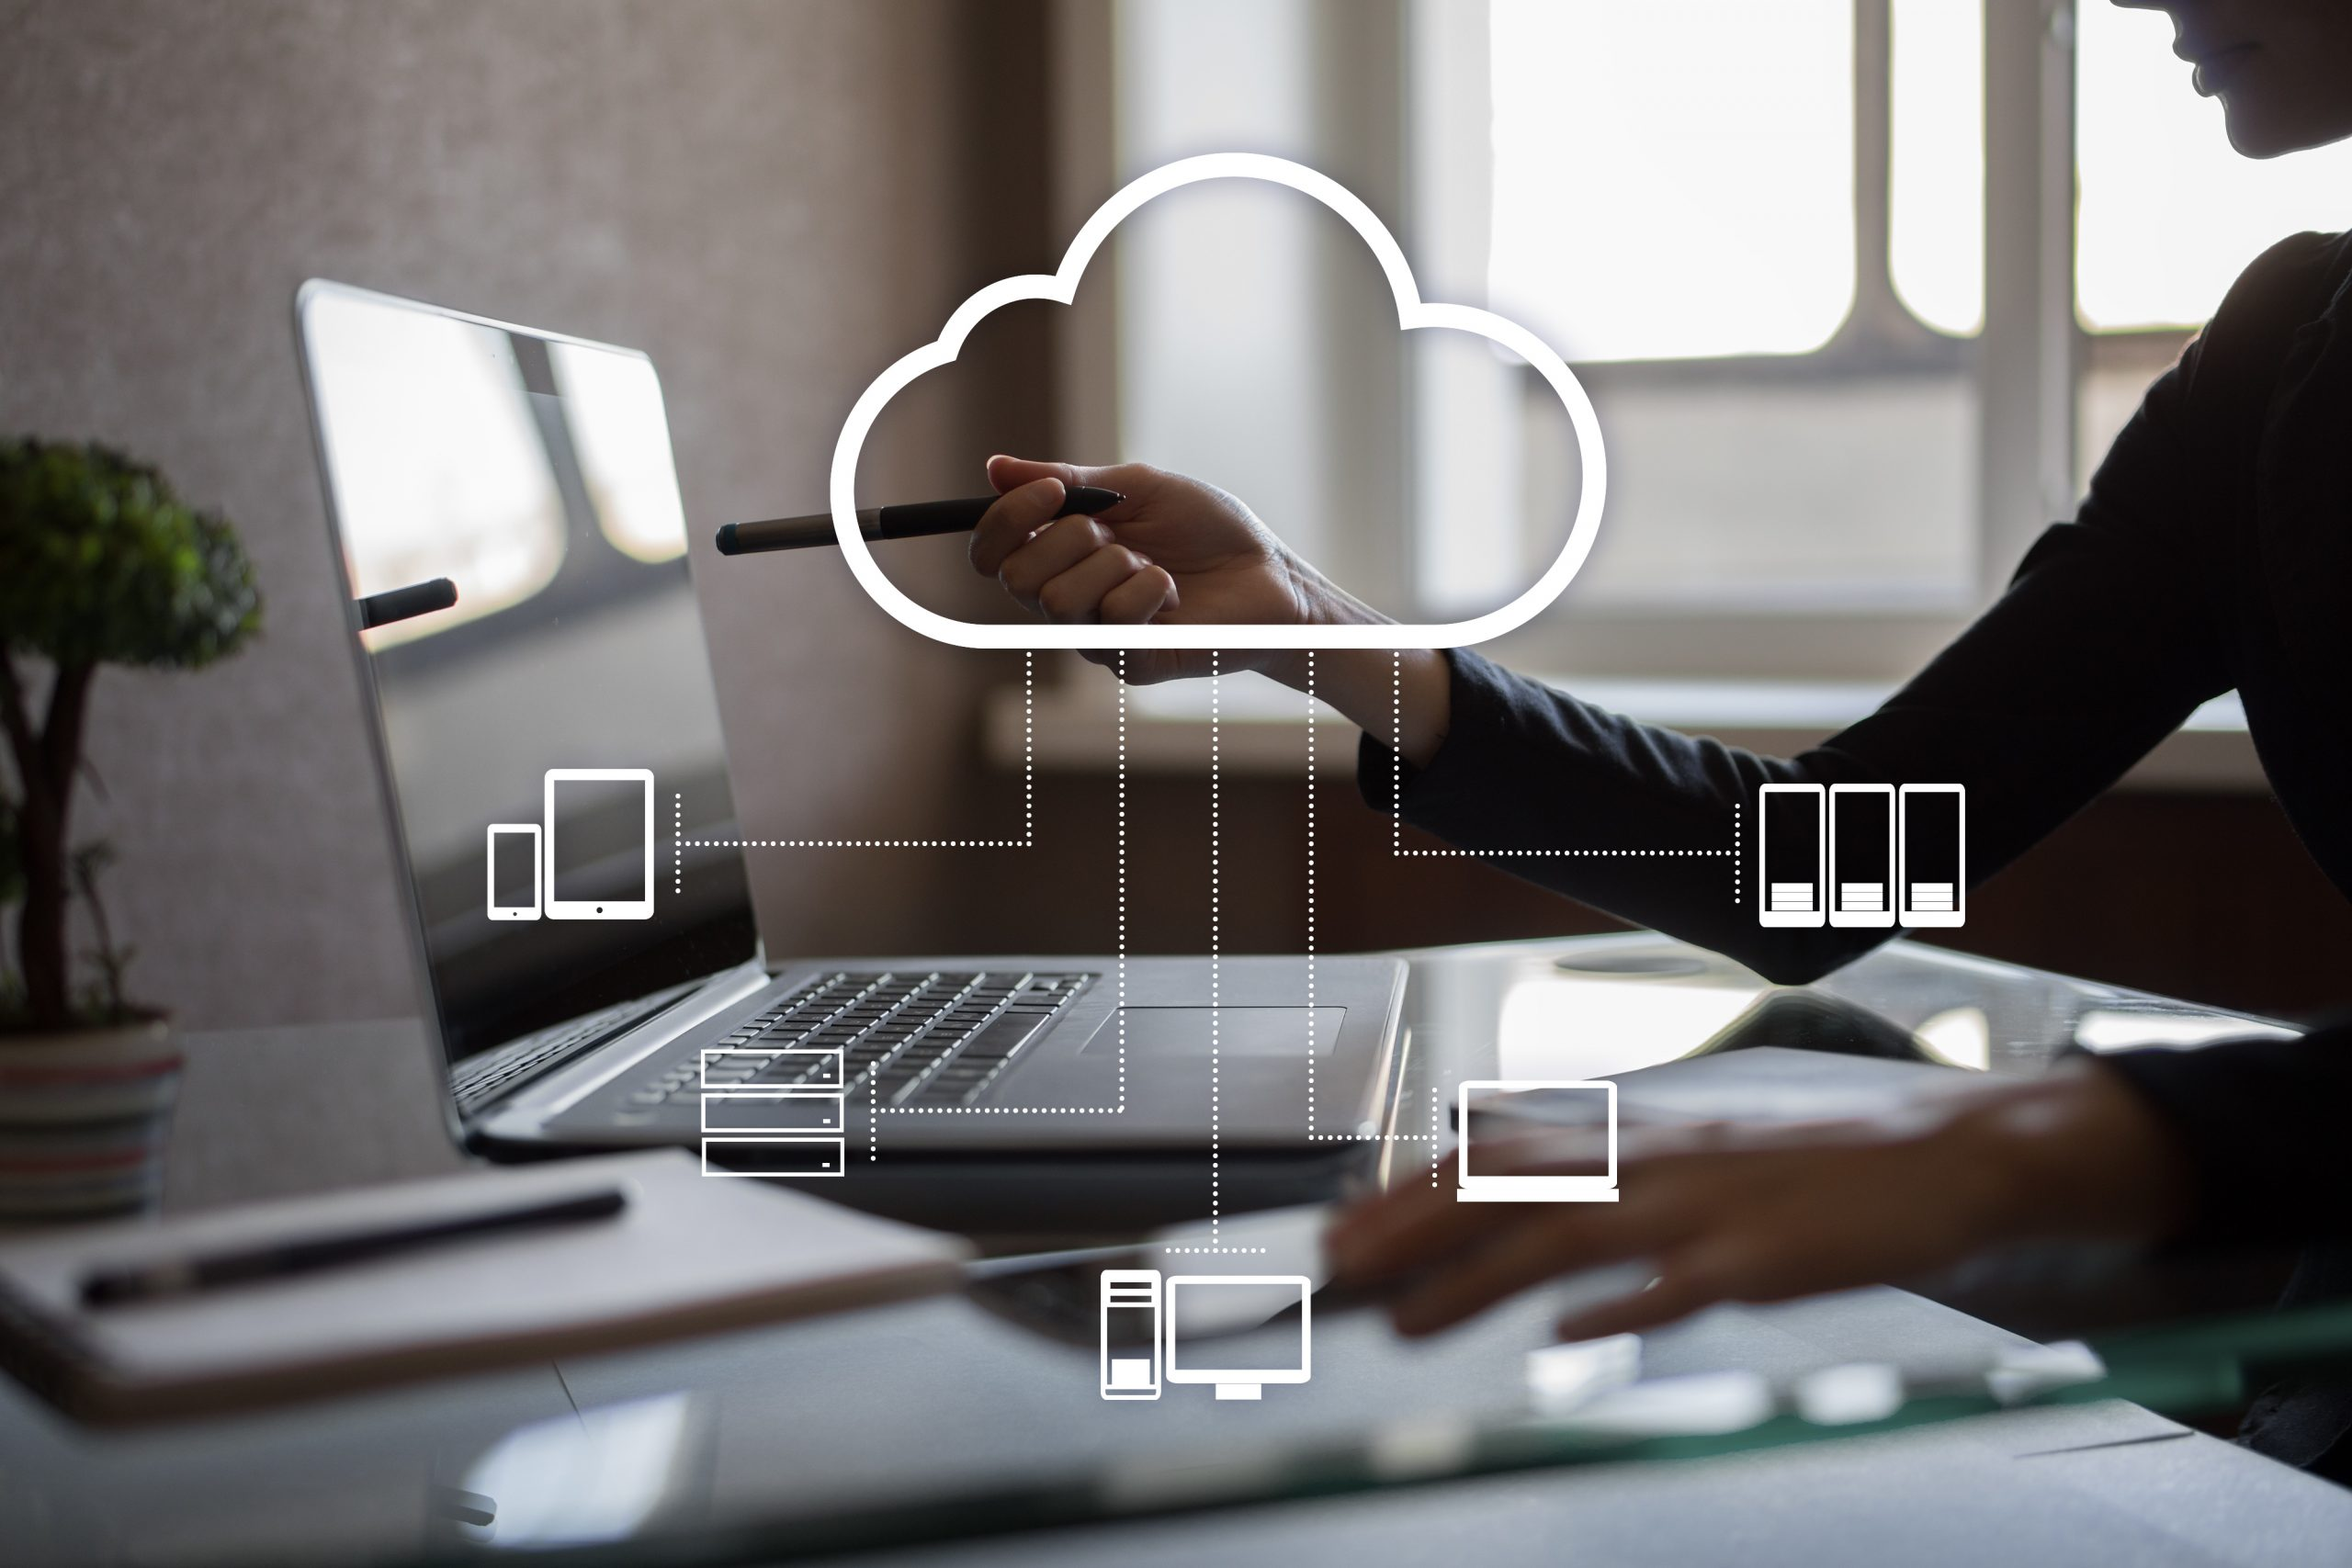 Read more about the article A Business Executive's Guide to Microsoft Office 365 and Cloud Computing